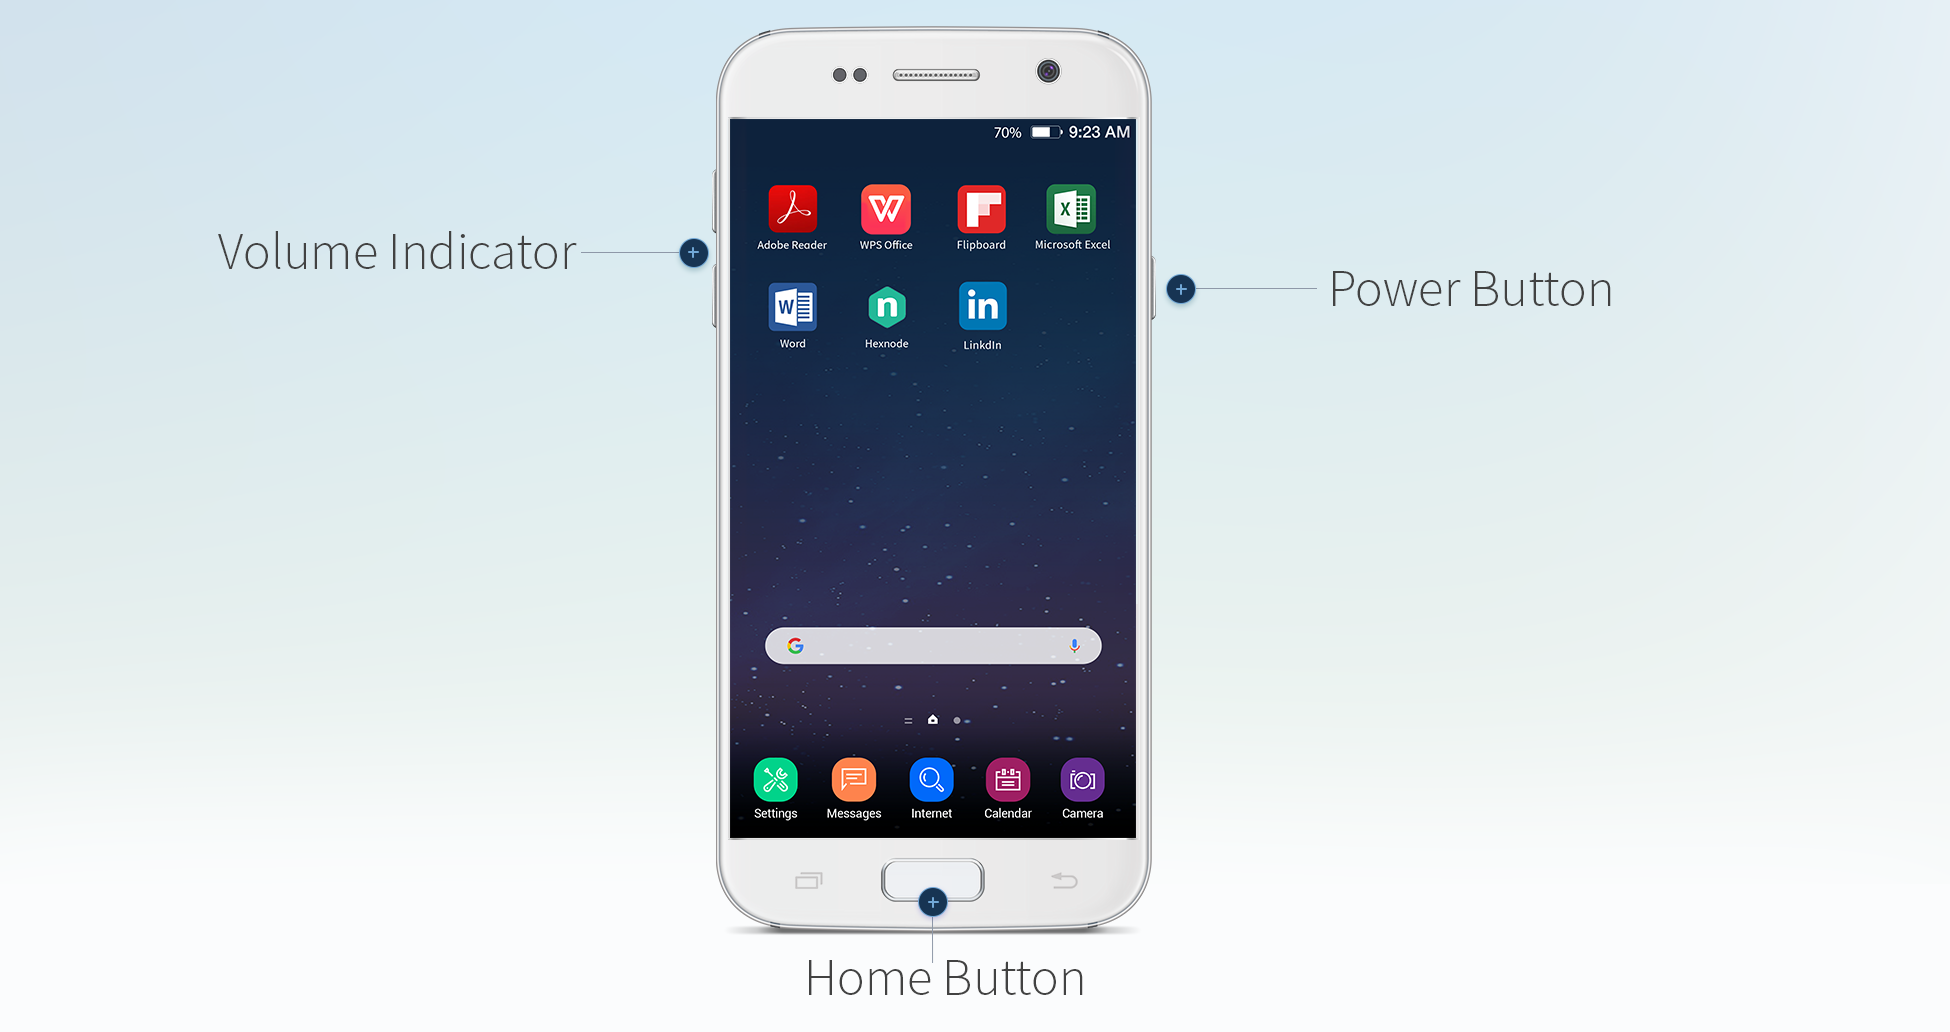 Hardware buttons on Android Devices